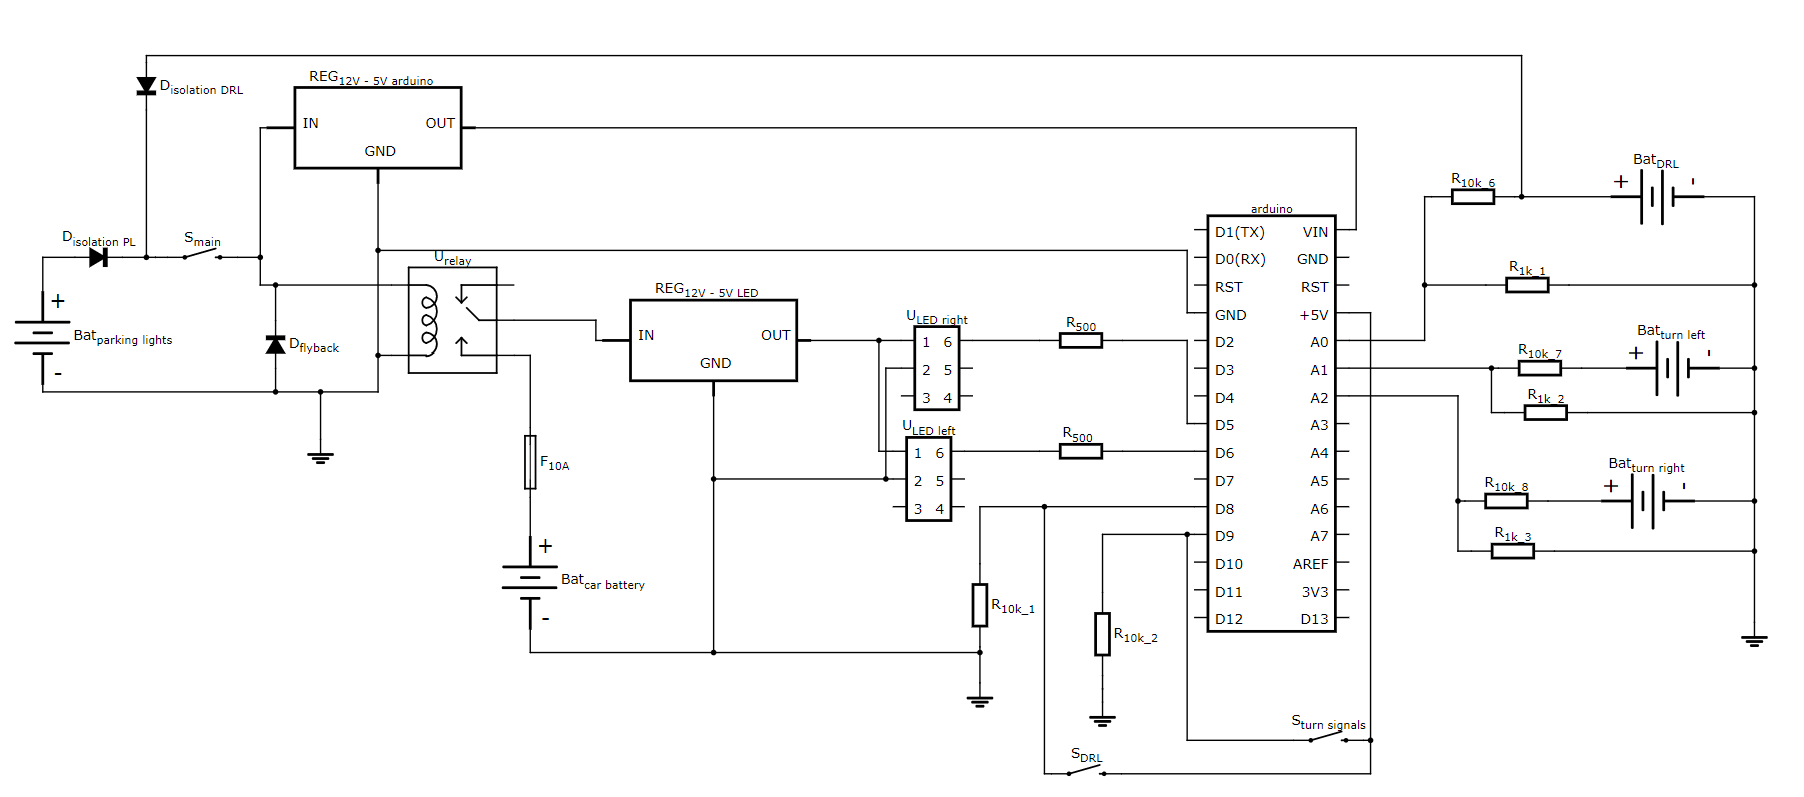 hight resolution of link to schematic https circuits io circuits 5441376 arduino car drl turn signal